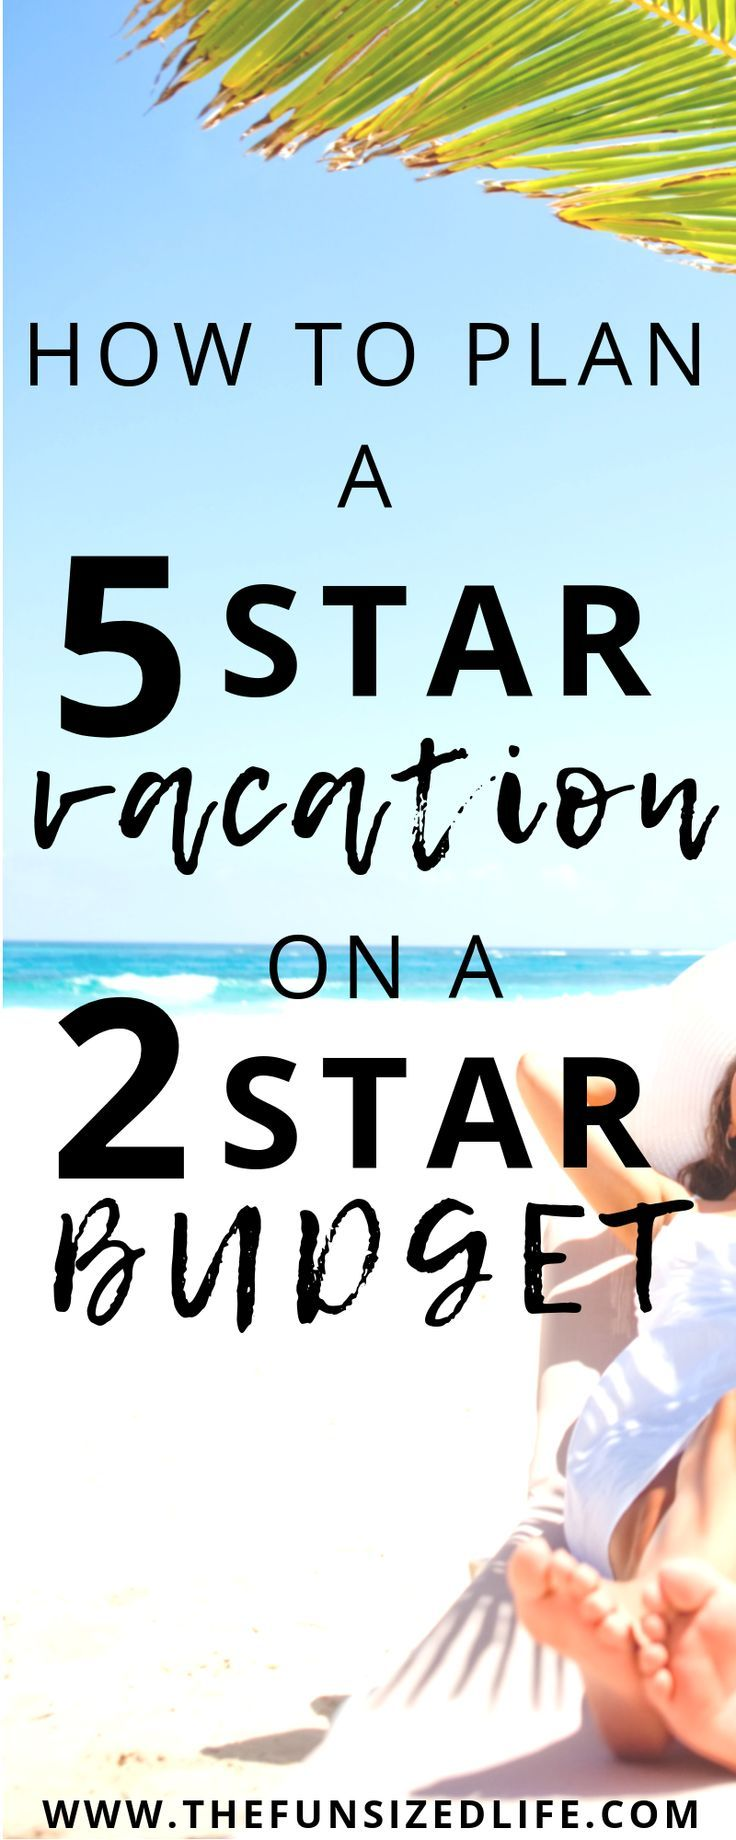 You can easily plan a vacation on a budget. Learn all the best tips and tricks for saving huge and planning smart!  #vacation #vacationonabudget #budgetvacation #budgeting #familyvacation